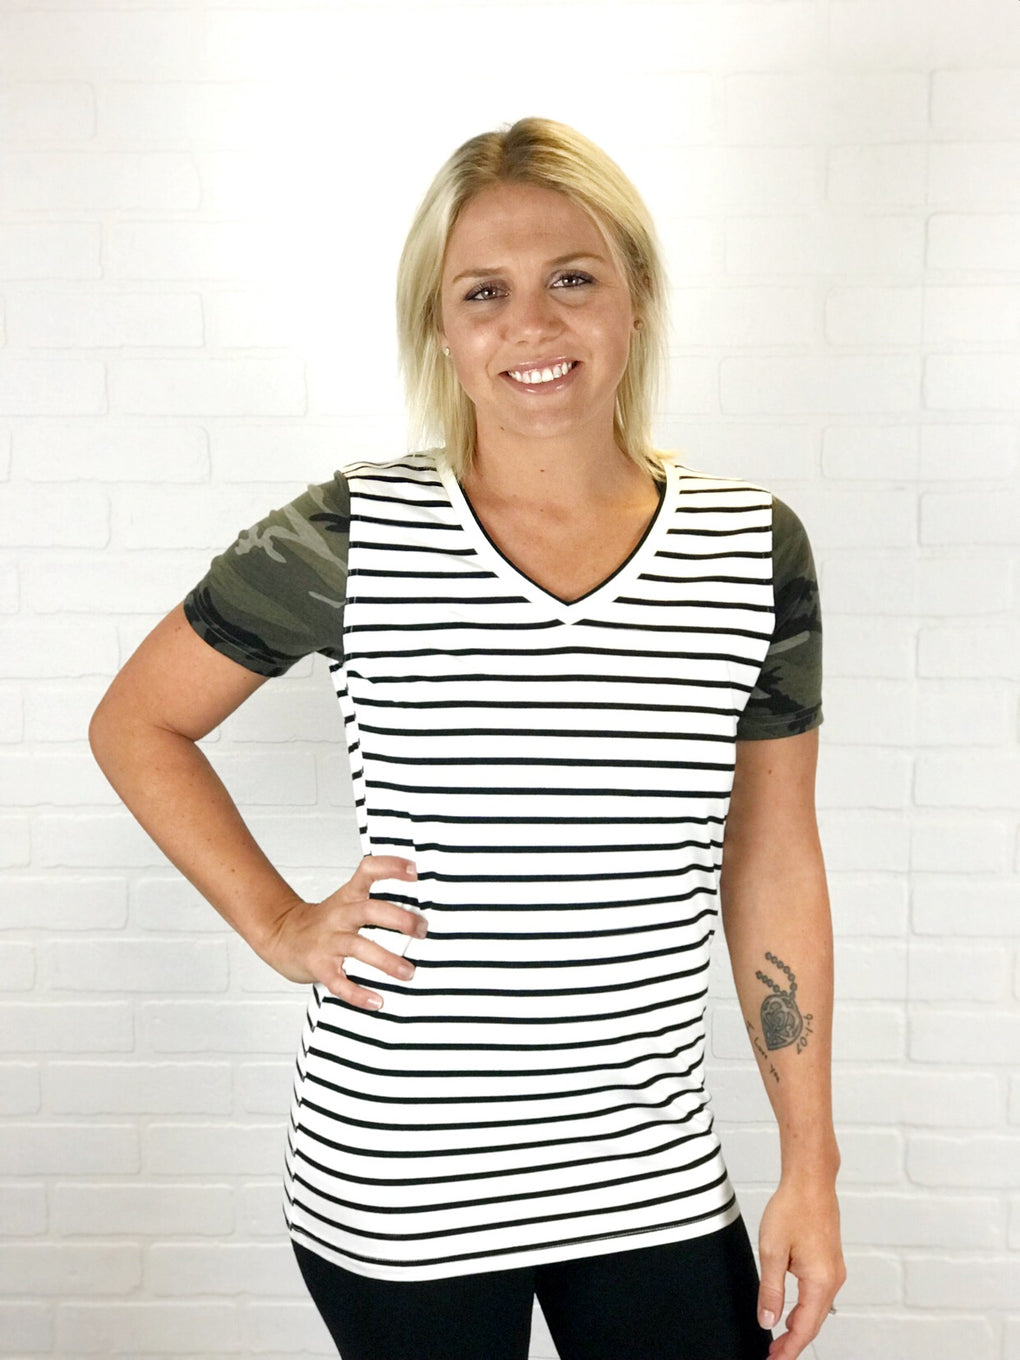 Ampersand Ave - Accent Sleeve Tee- Camo and Black Stripe